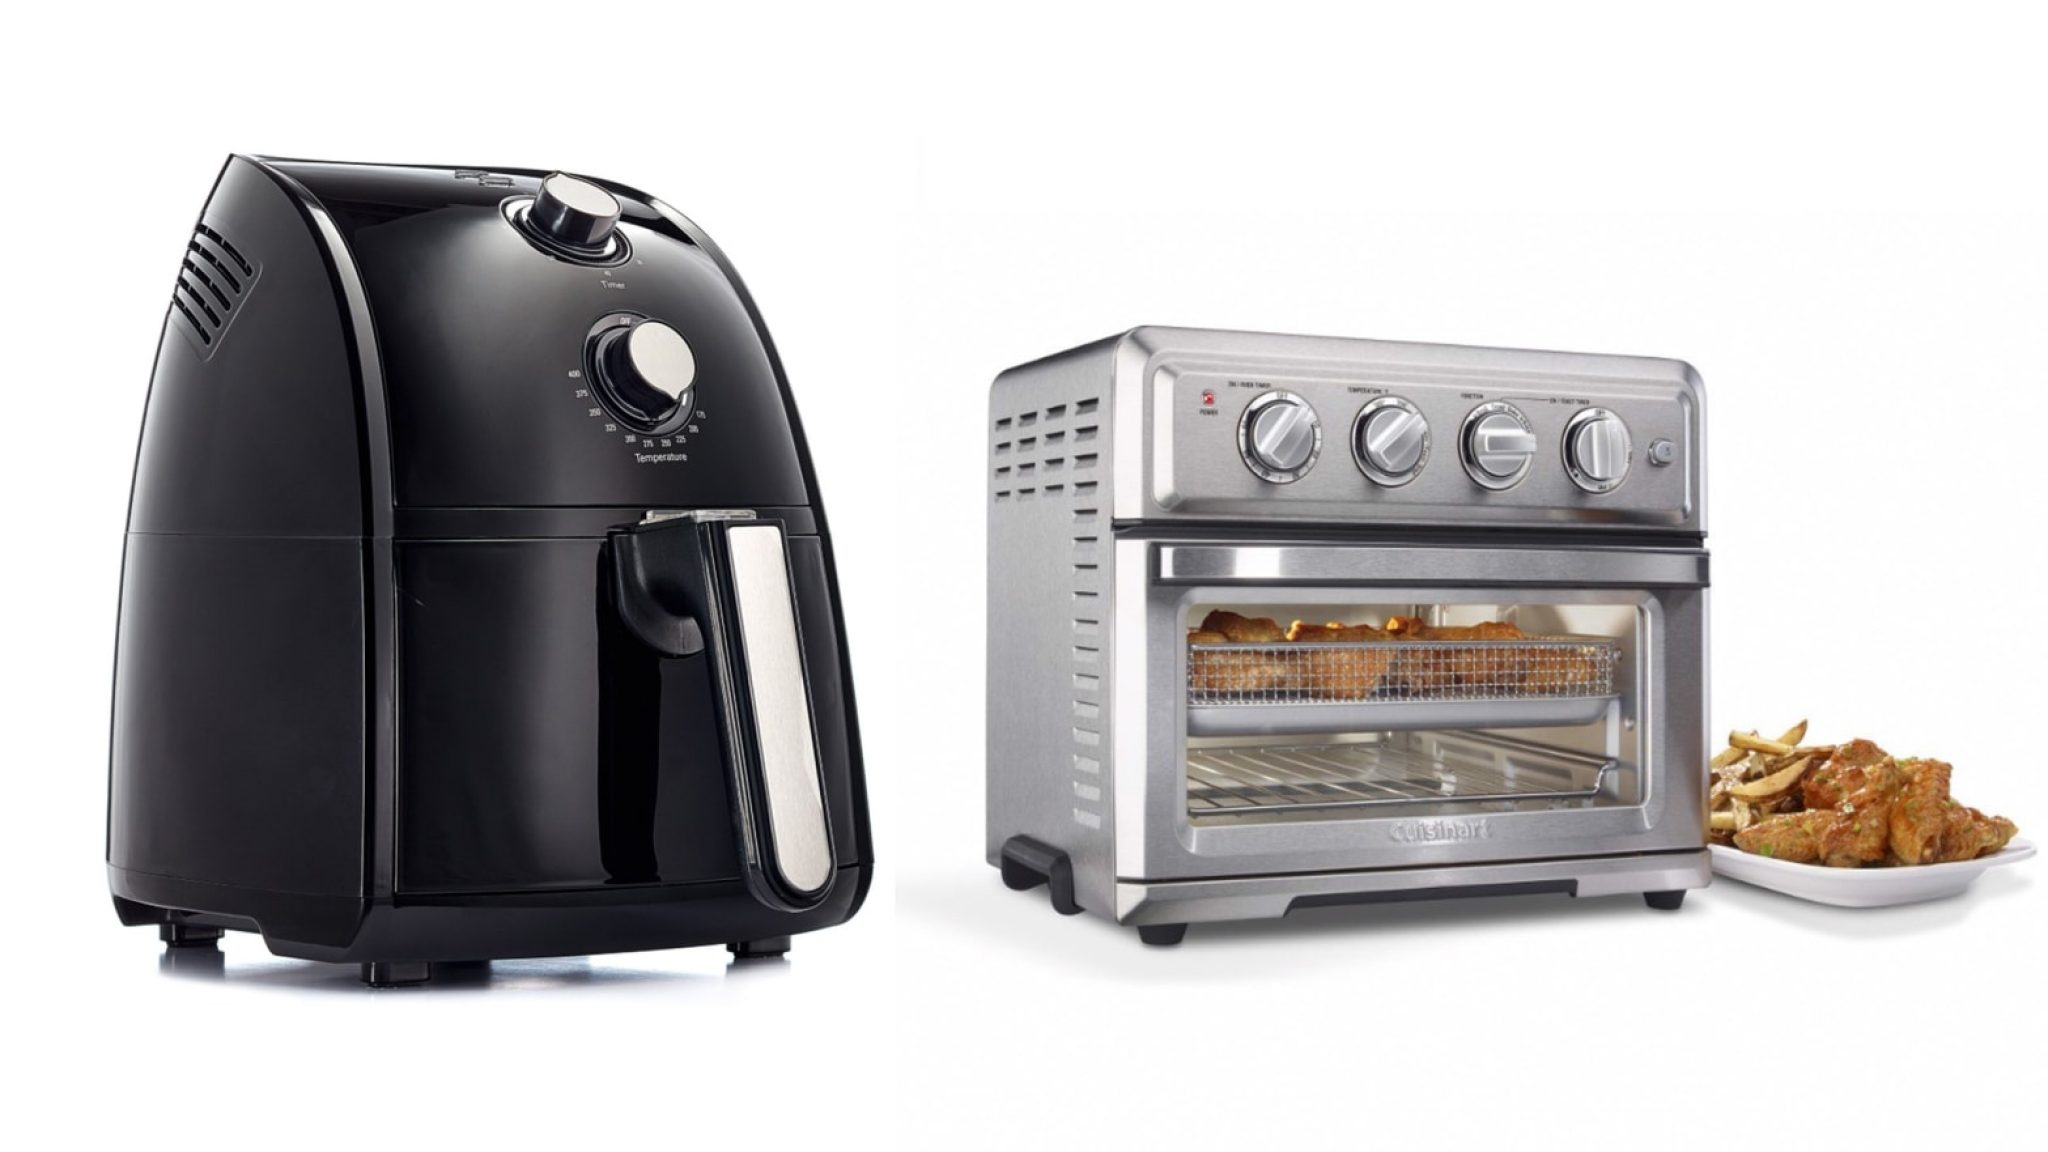 Top 10 Best Air Fryers of 2020